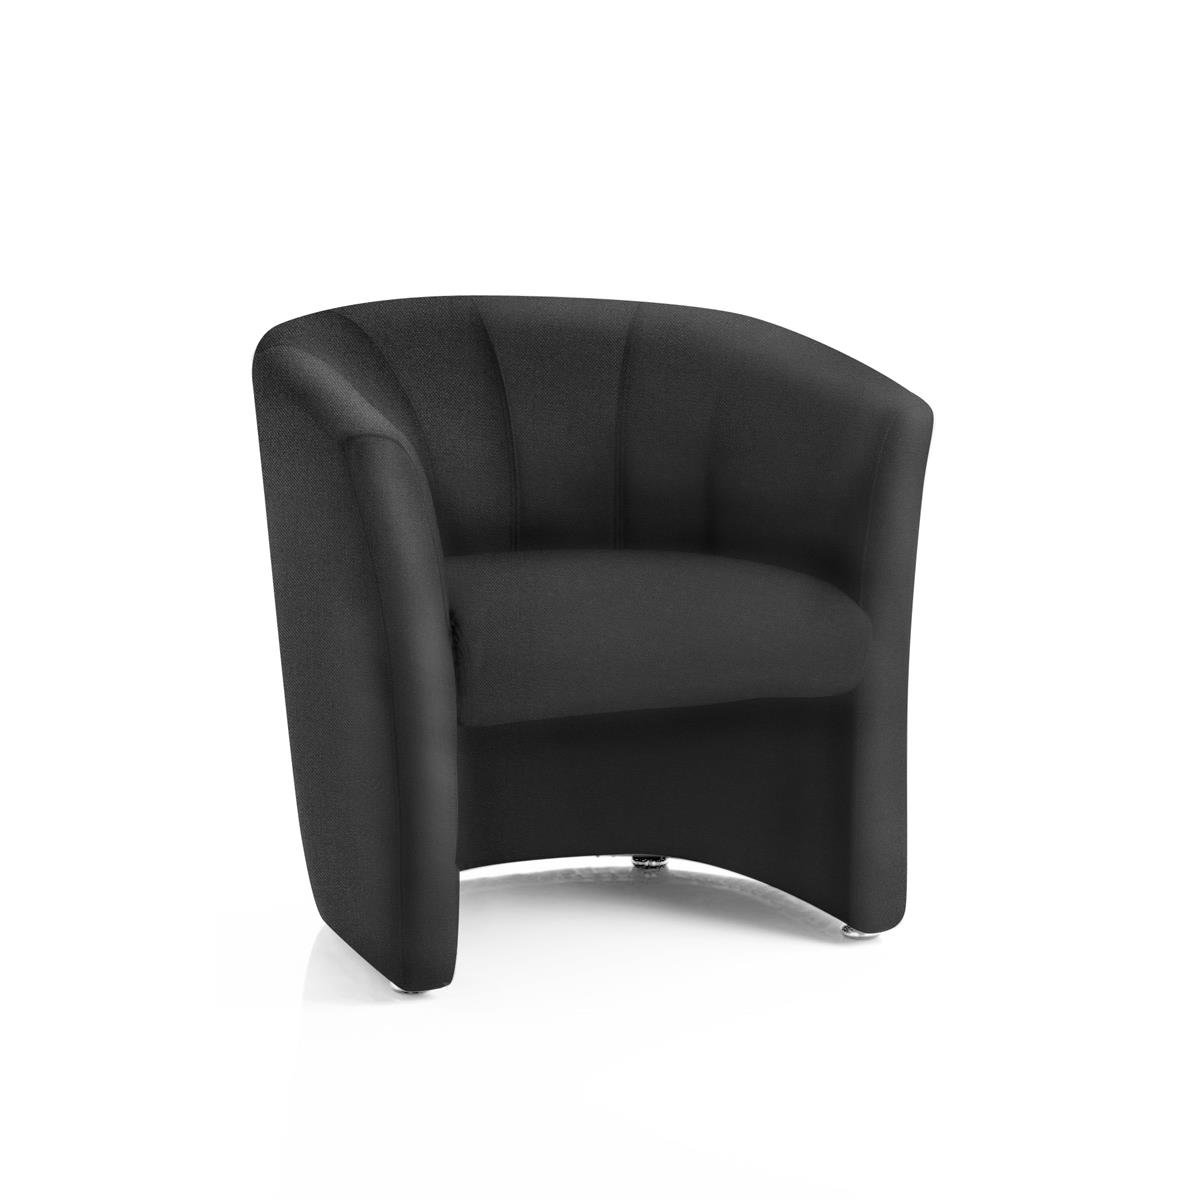 Trexus Tub Arm Chair Black 450x480x460mm Ref BR000099